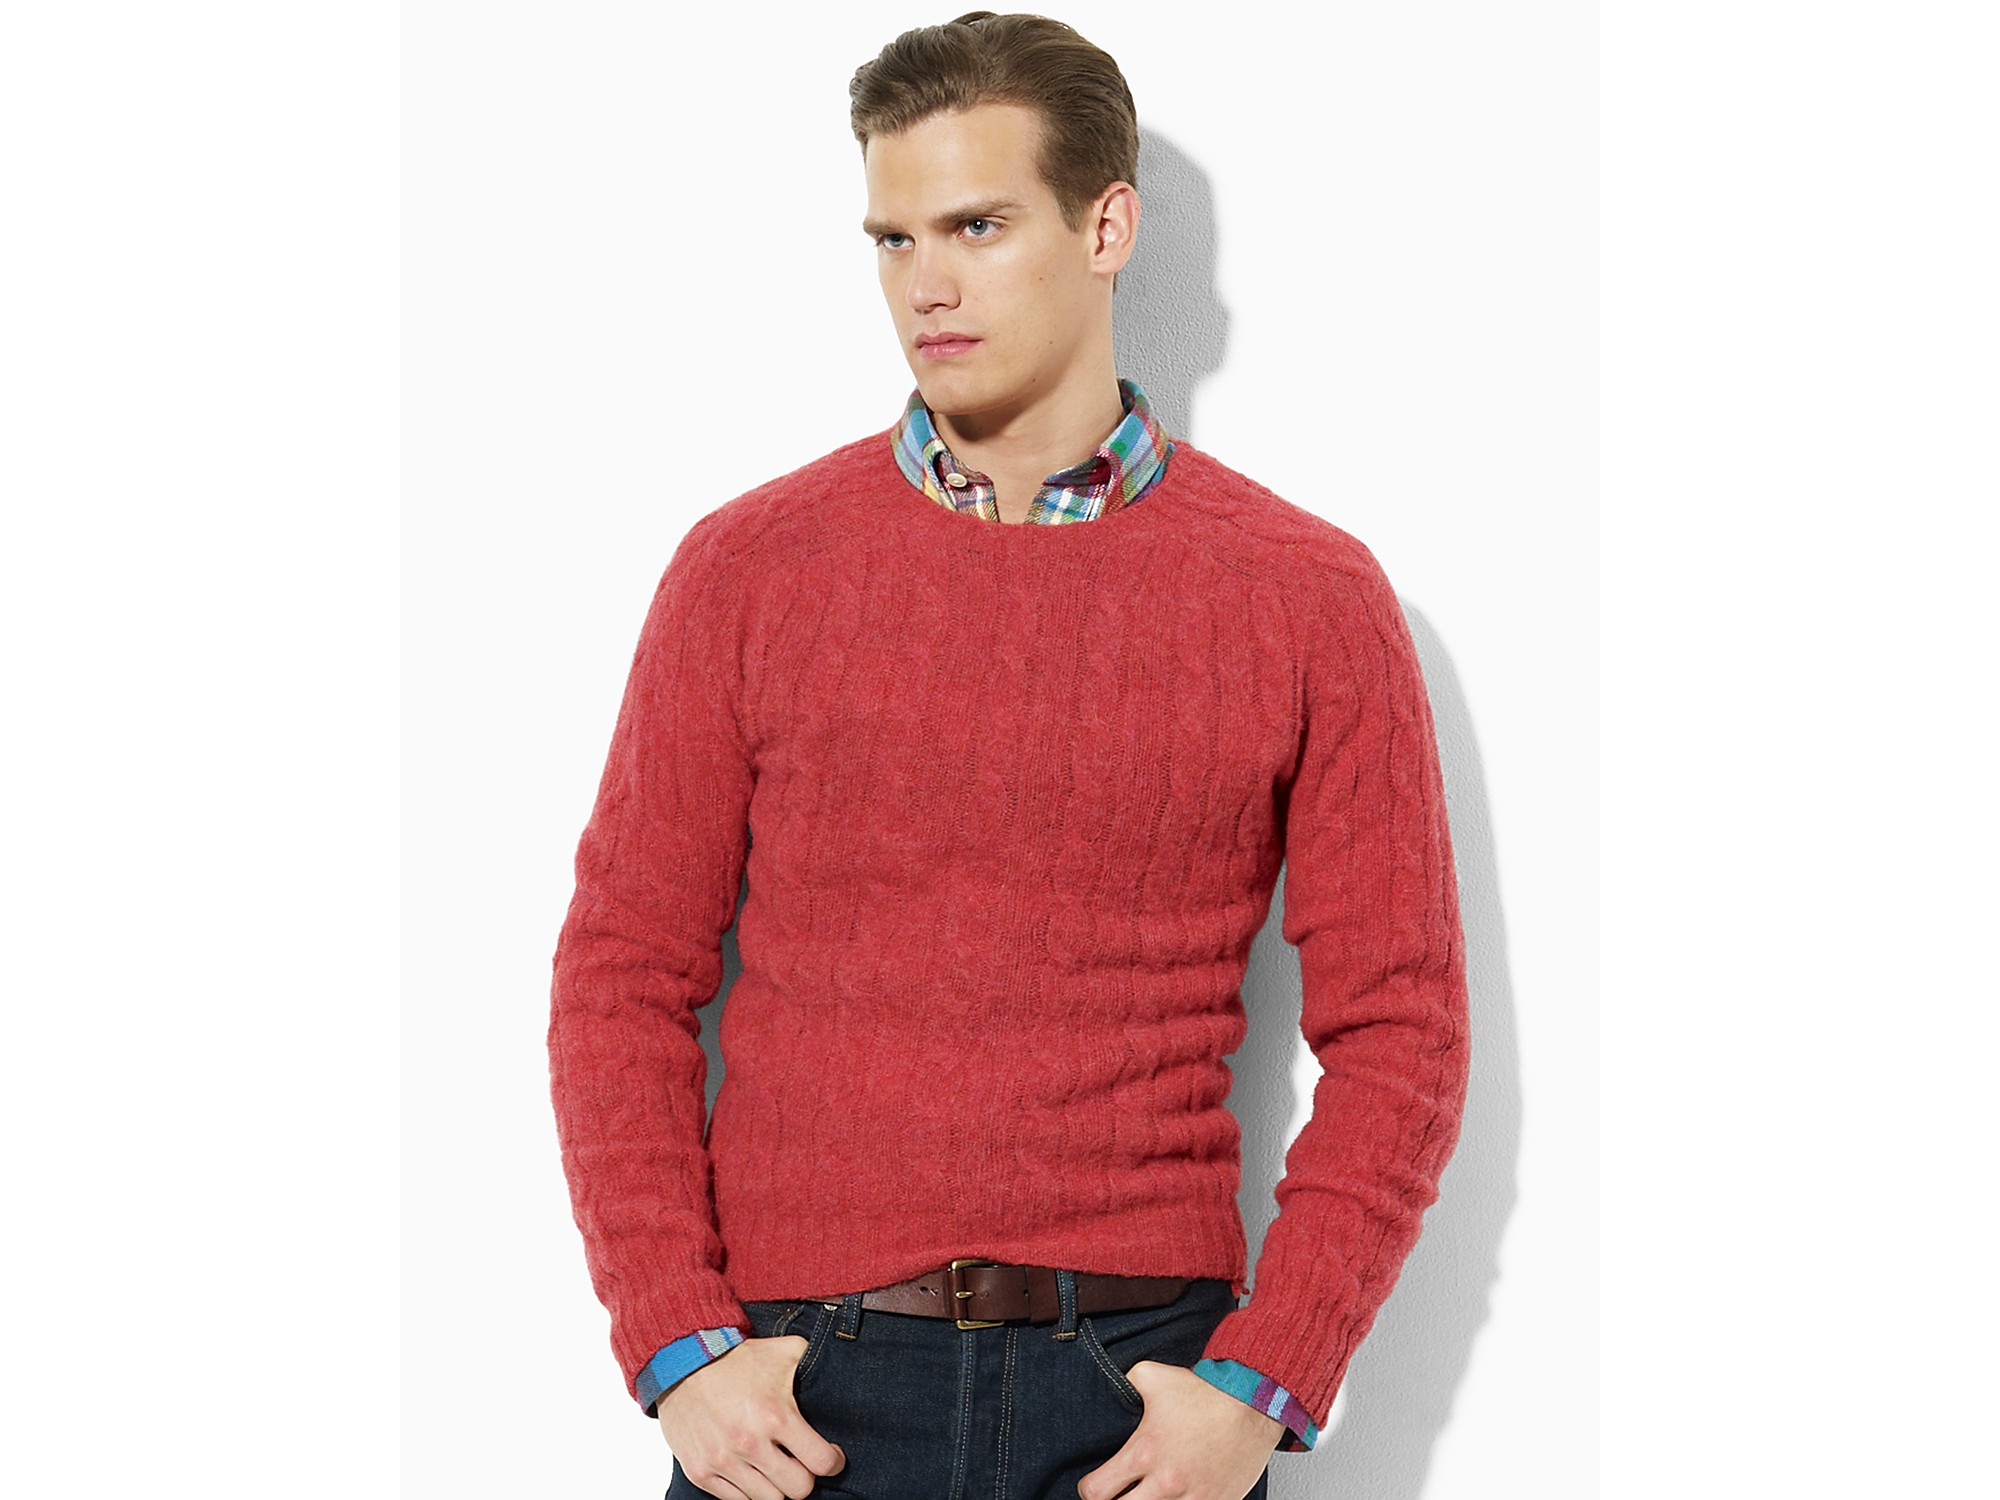 539656d0f Ash Polo Ralph Lauren Wool-cashmere Cable-knit Sweater in Green for ...